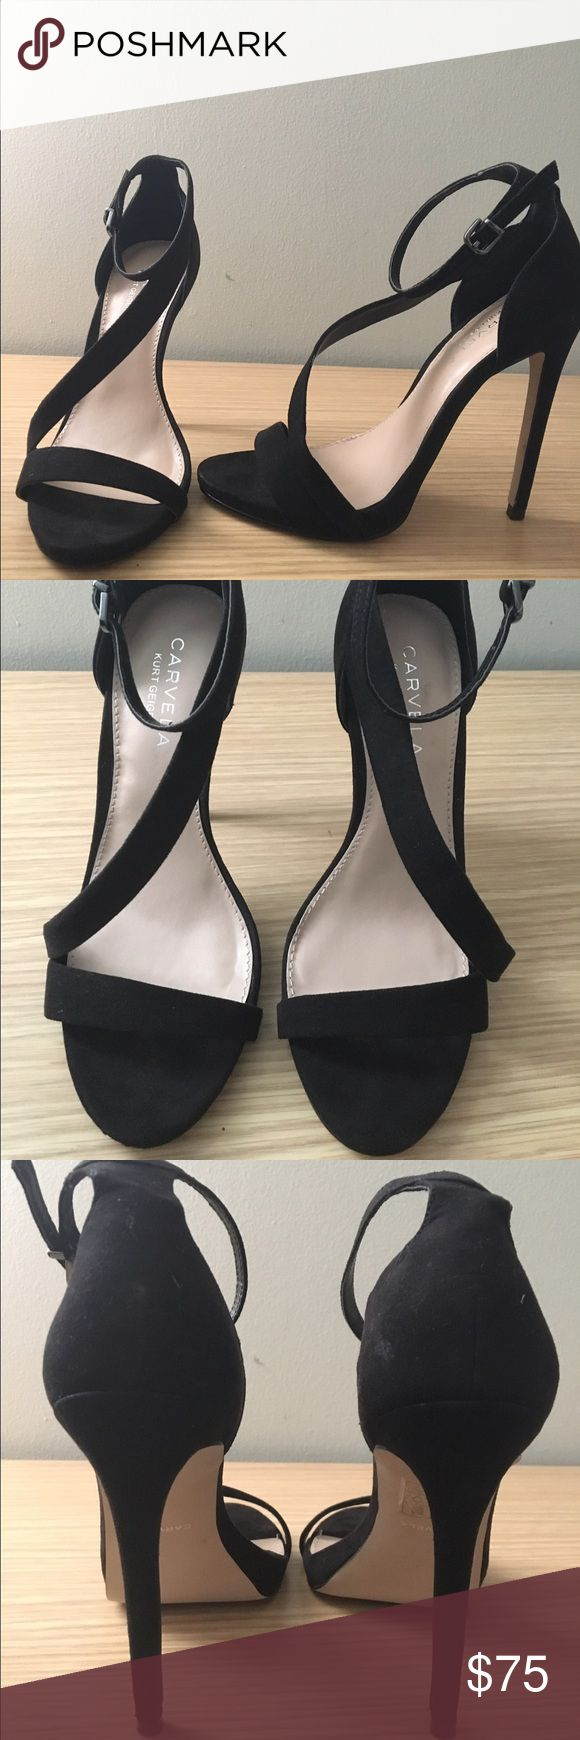 CARAVELA KURT GEIGER SHOES, size 6 In perfect condition, like new. Carvela kurt geiger Shoes Heels